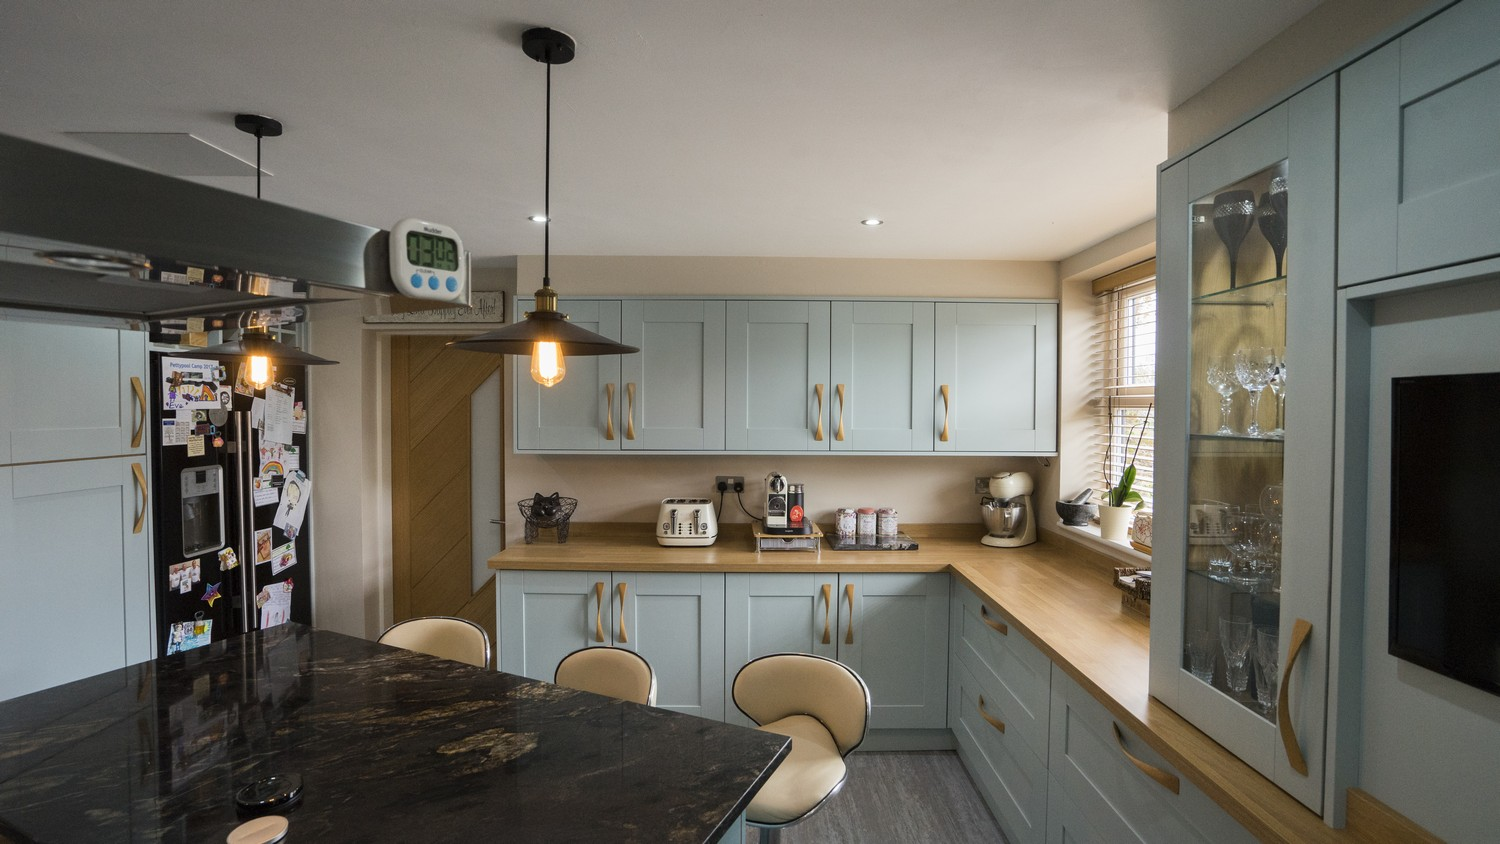 This family kitchen has oak timber worktops around the outer cupboards with matching bespoke oak handles throughout.